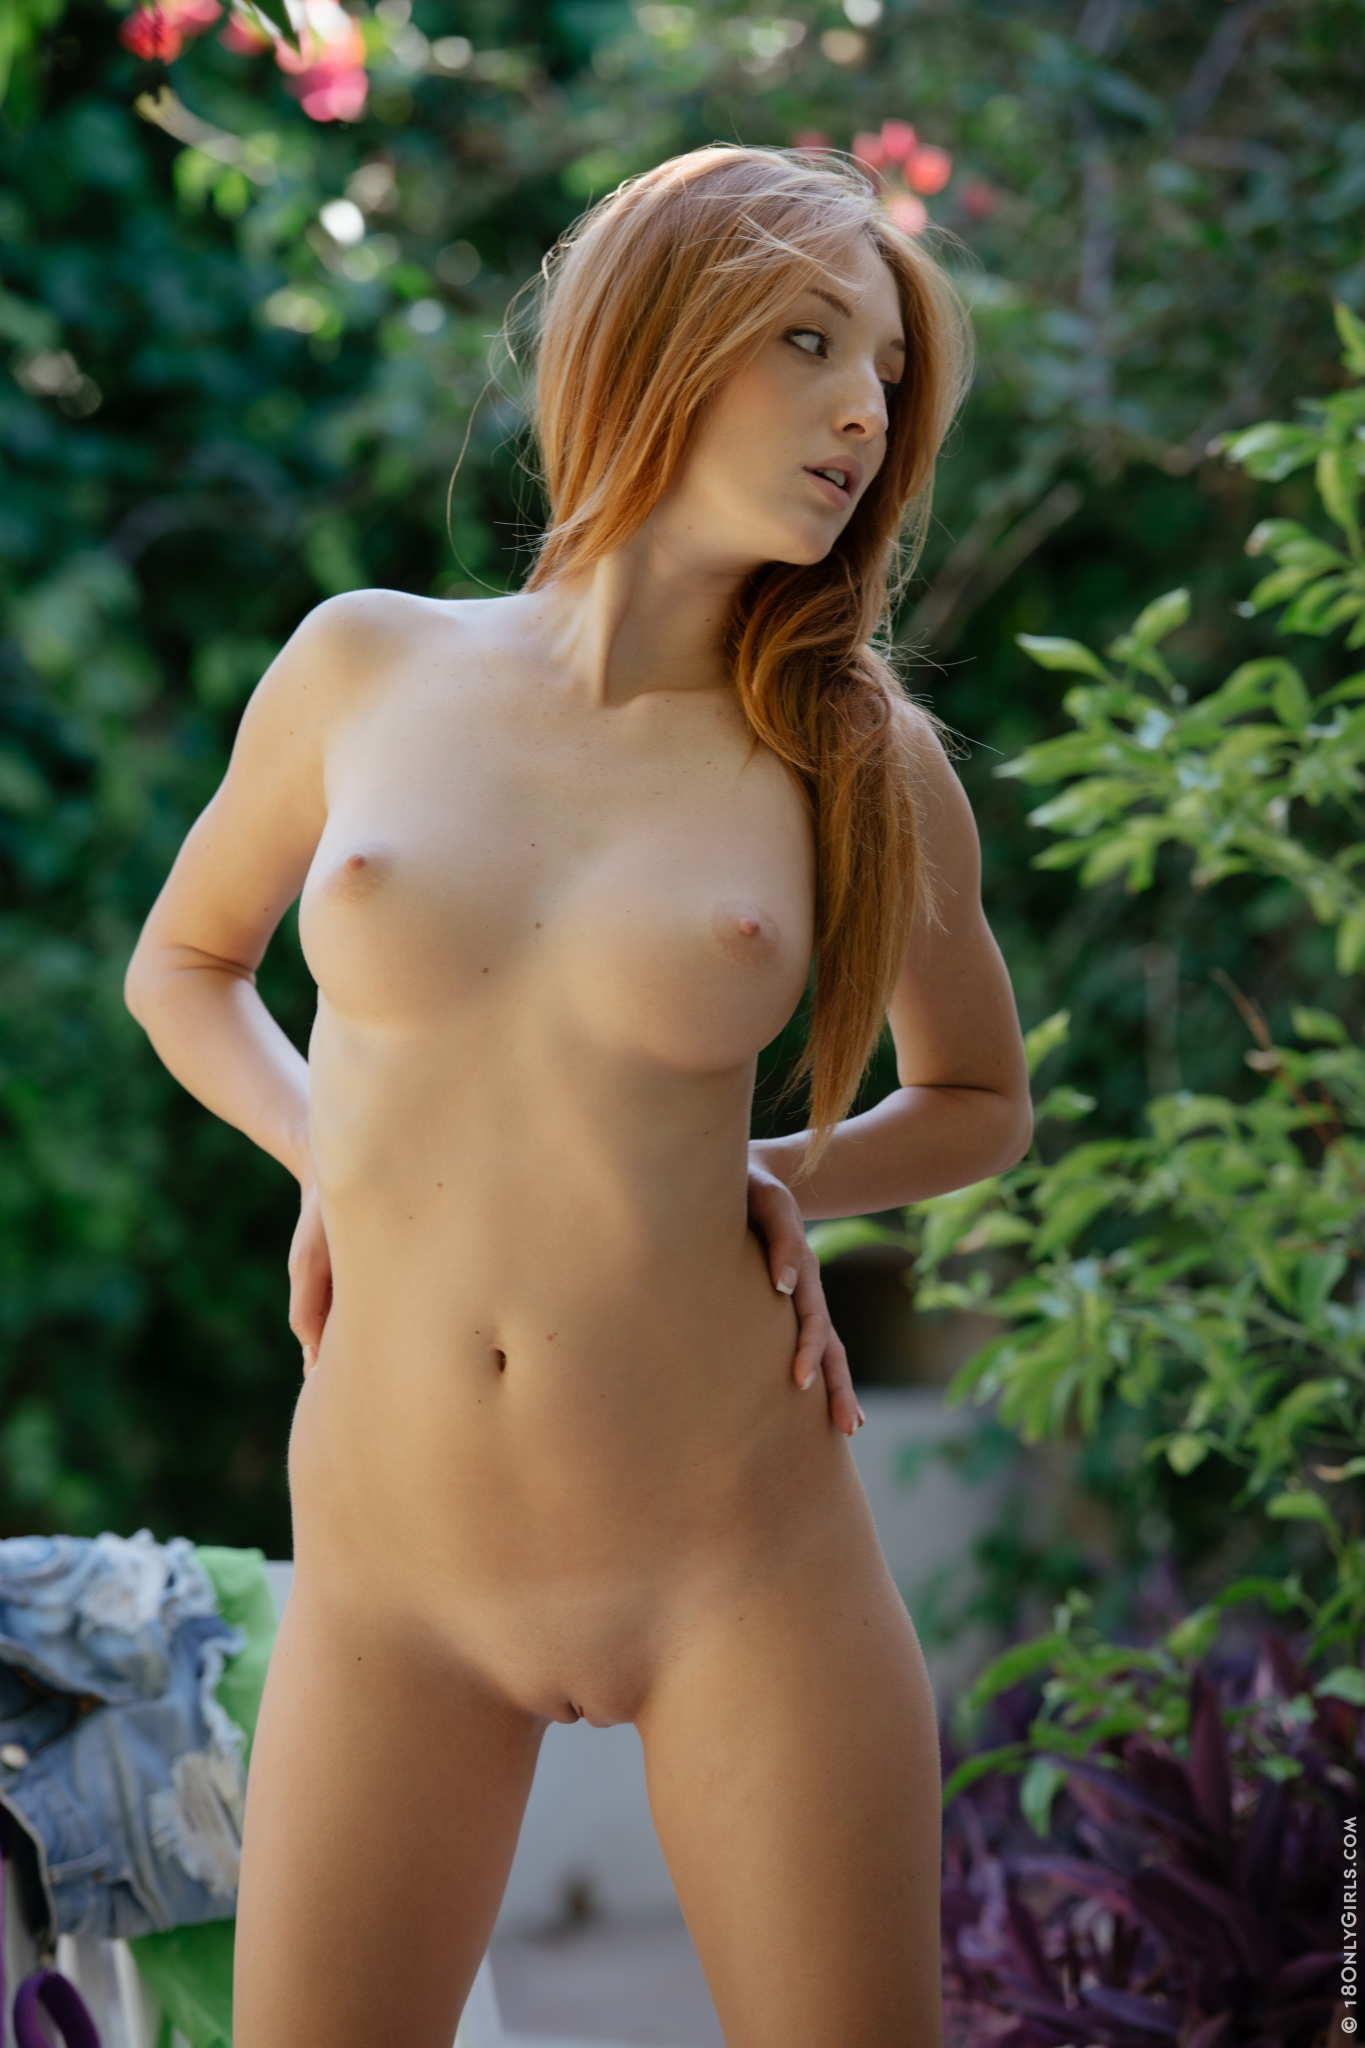 Amature sex vids stripping